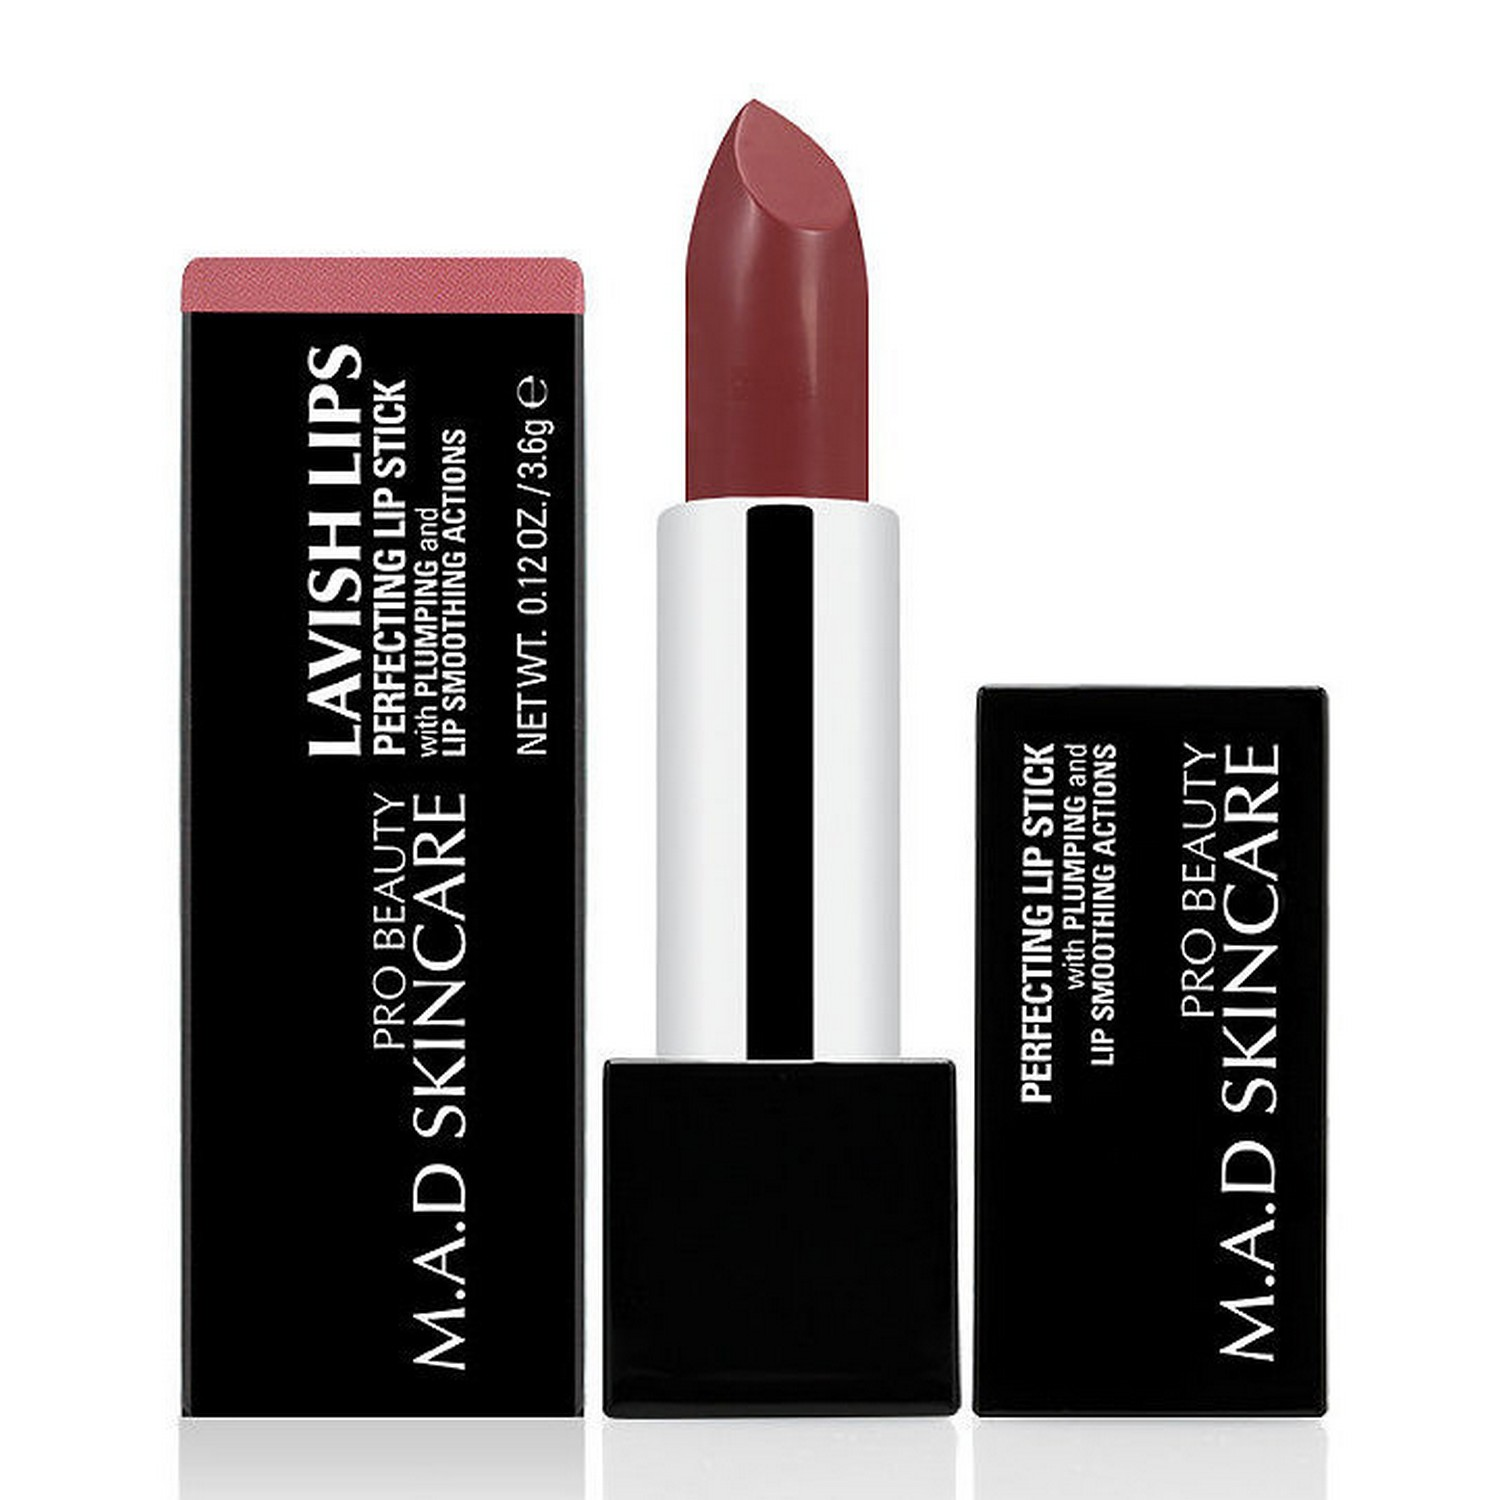 M.A.D SKINCARE LAVISH LIPS PERFECTING LIP STICK - WHIMSICAL (0.12 oz / 3.6 g)